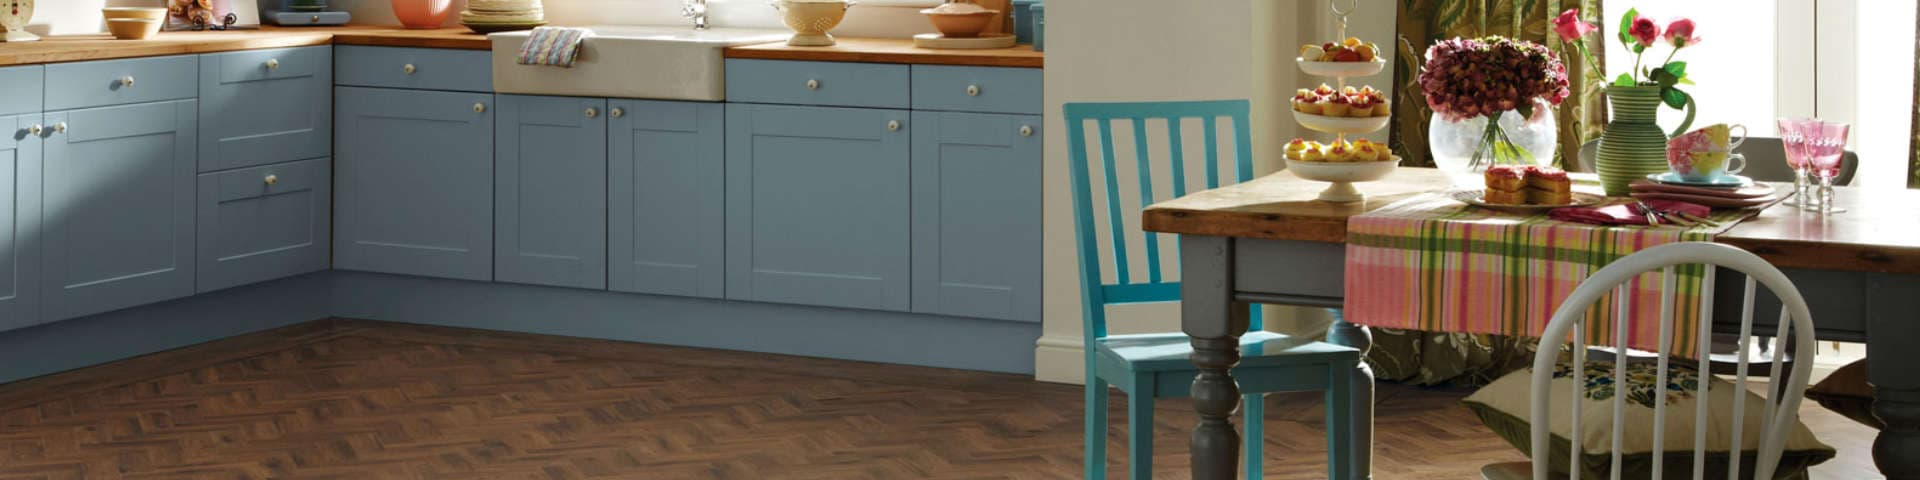 Karndean Wooden Kitchen Flooring